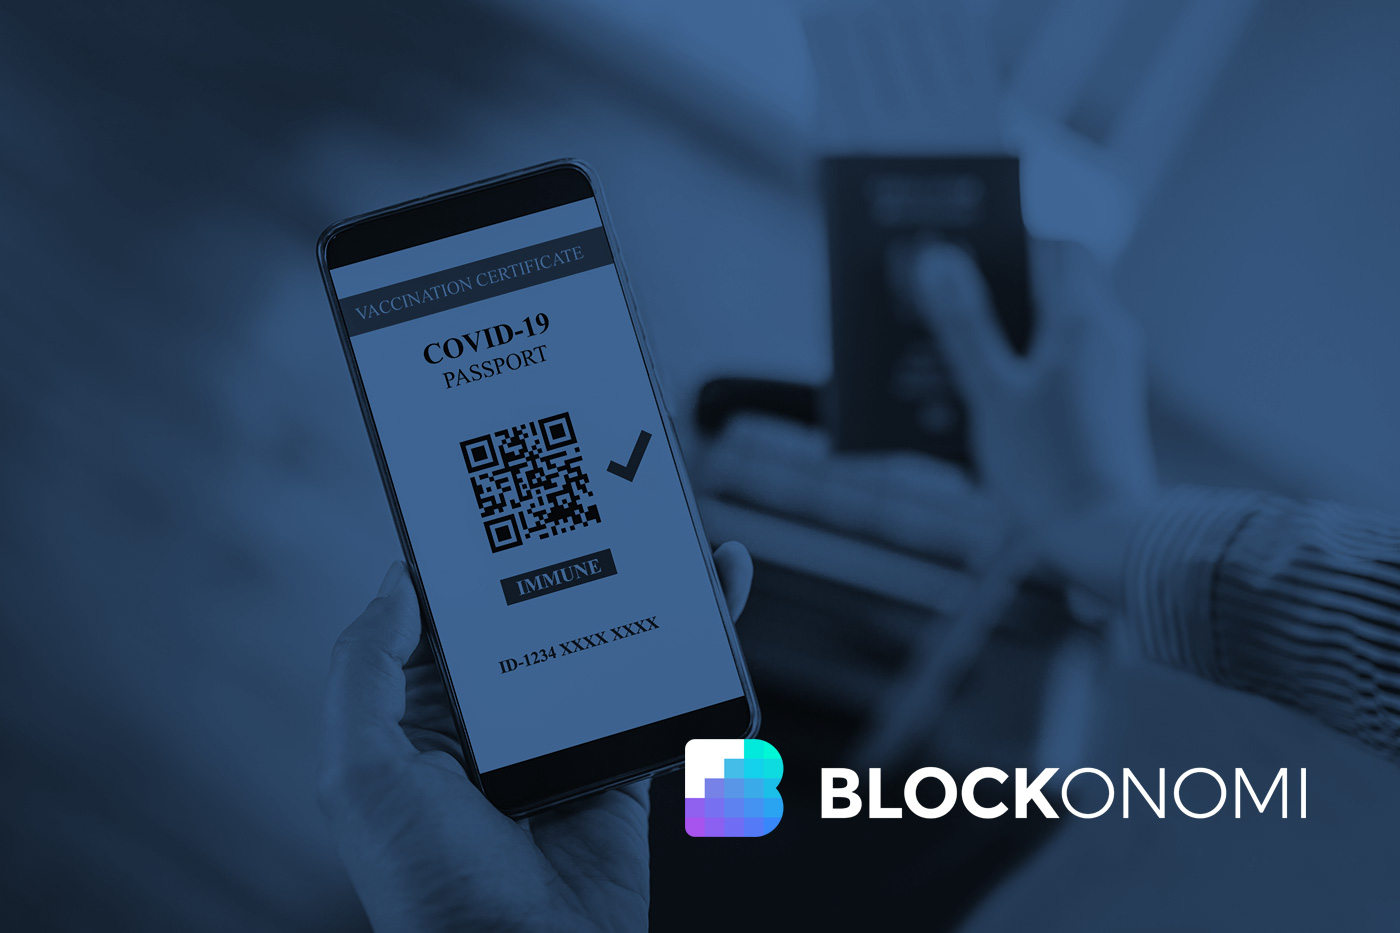 New York to Accelerate Business Reopenings with Blockchain-Based COVID19 Passport